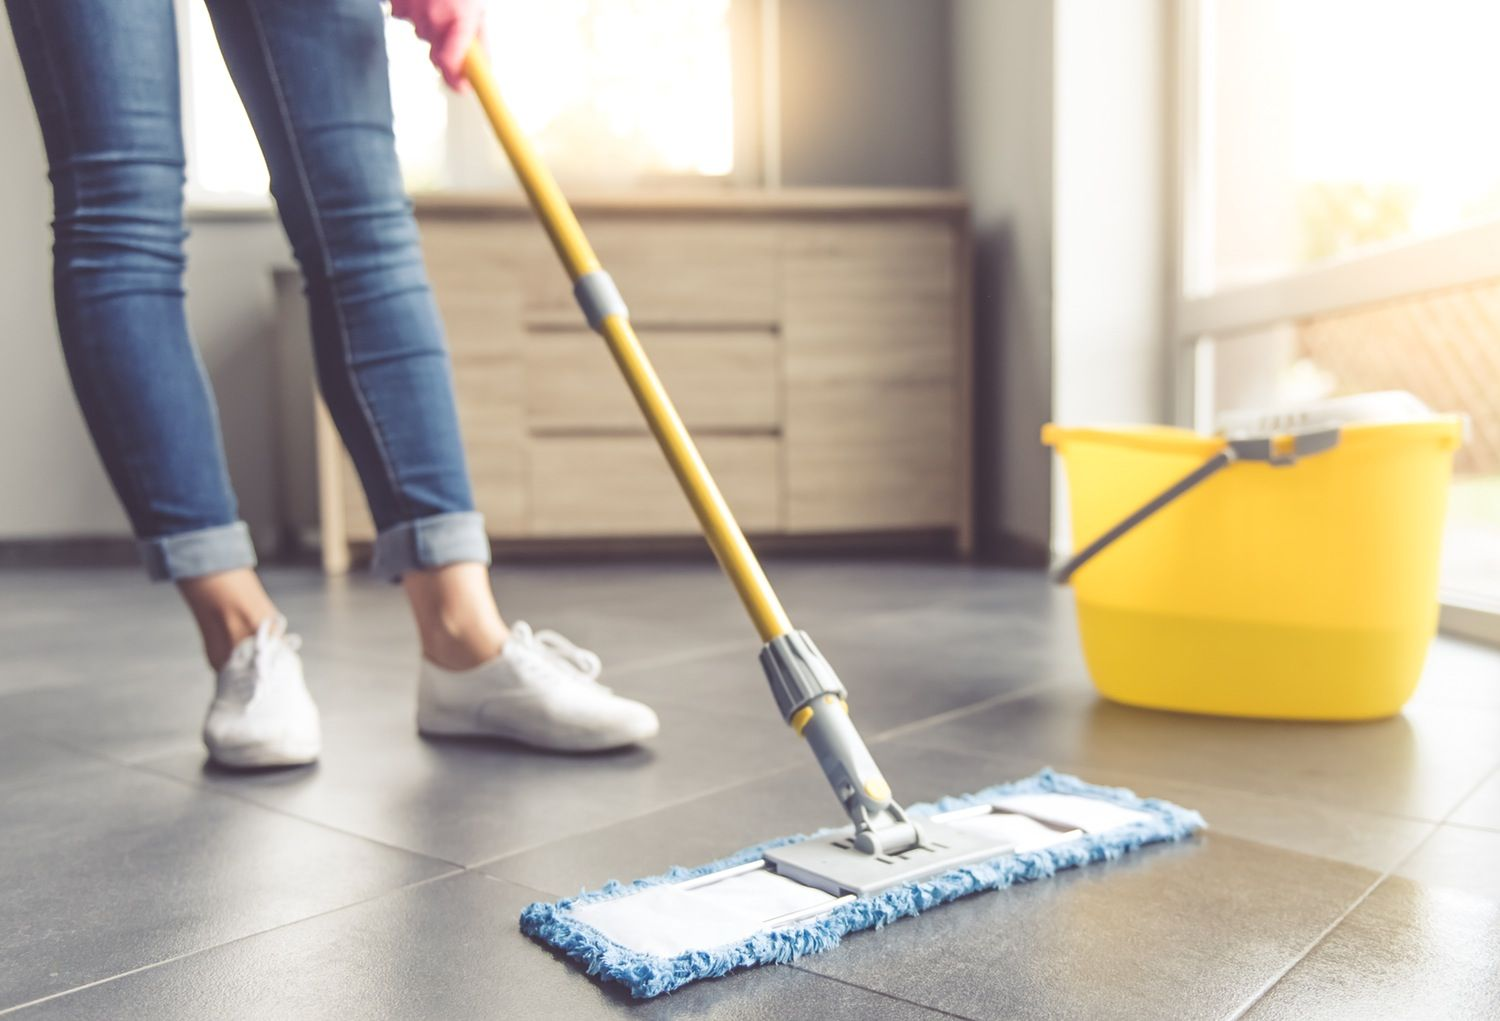 5 Things To Know About Cleaning Your Kitchen Floors Floor Cleaner Clean Kitchen Floor Cleaning Tile Floors